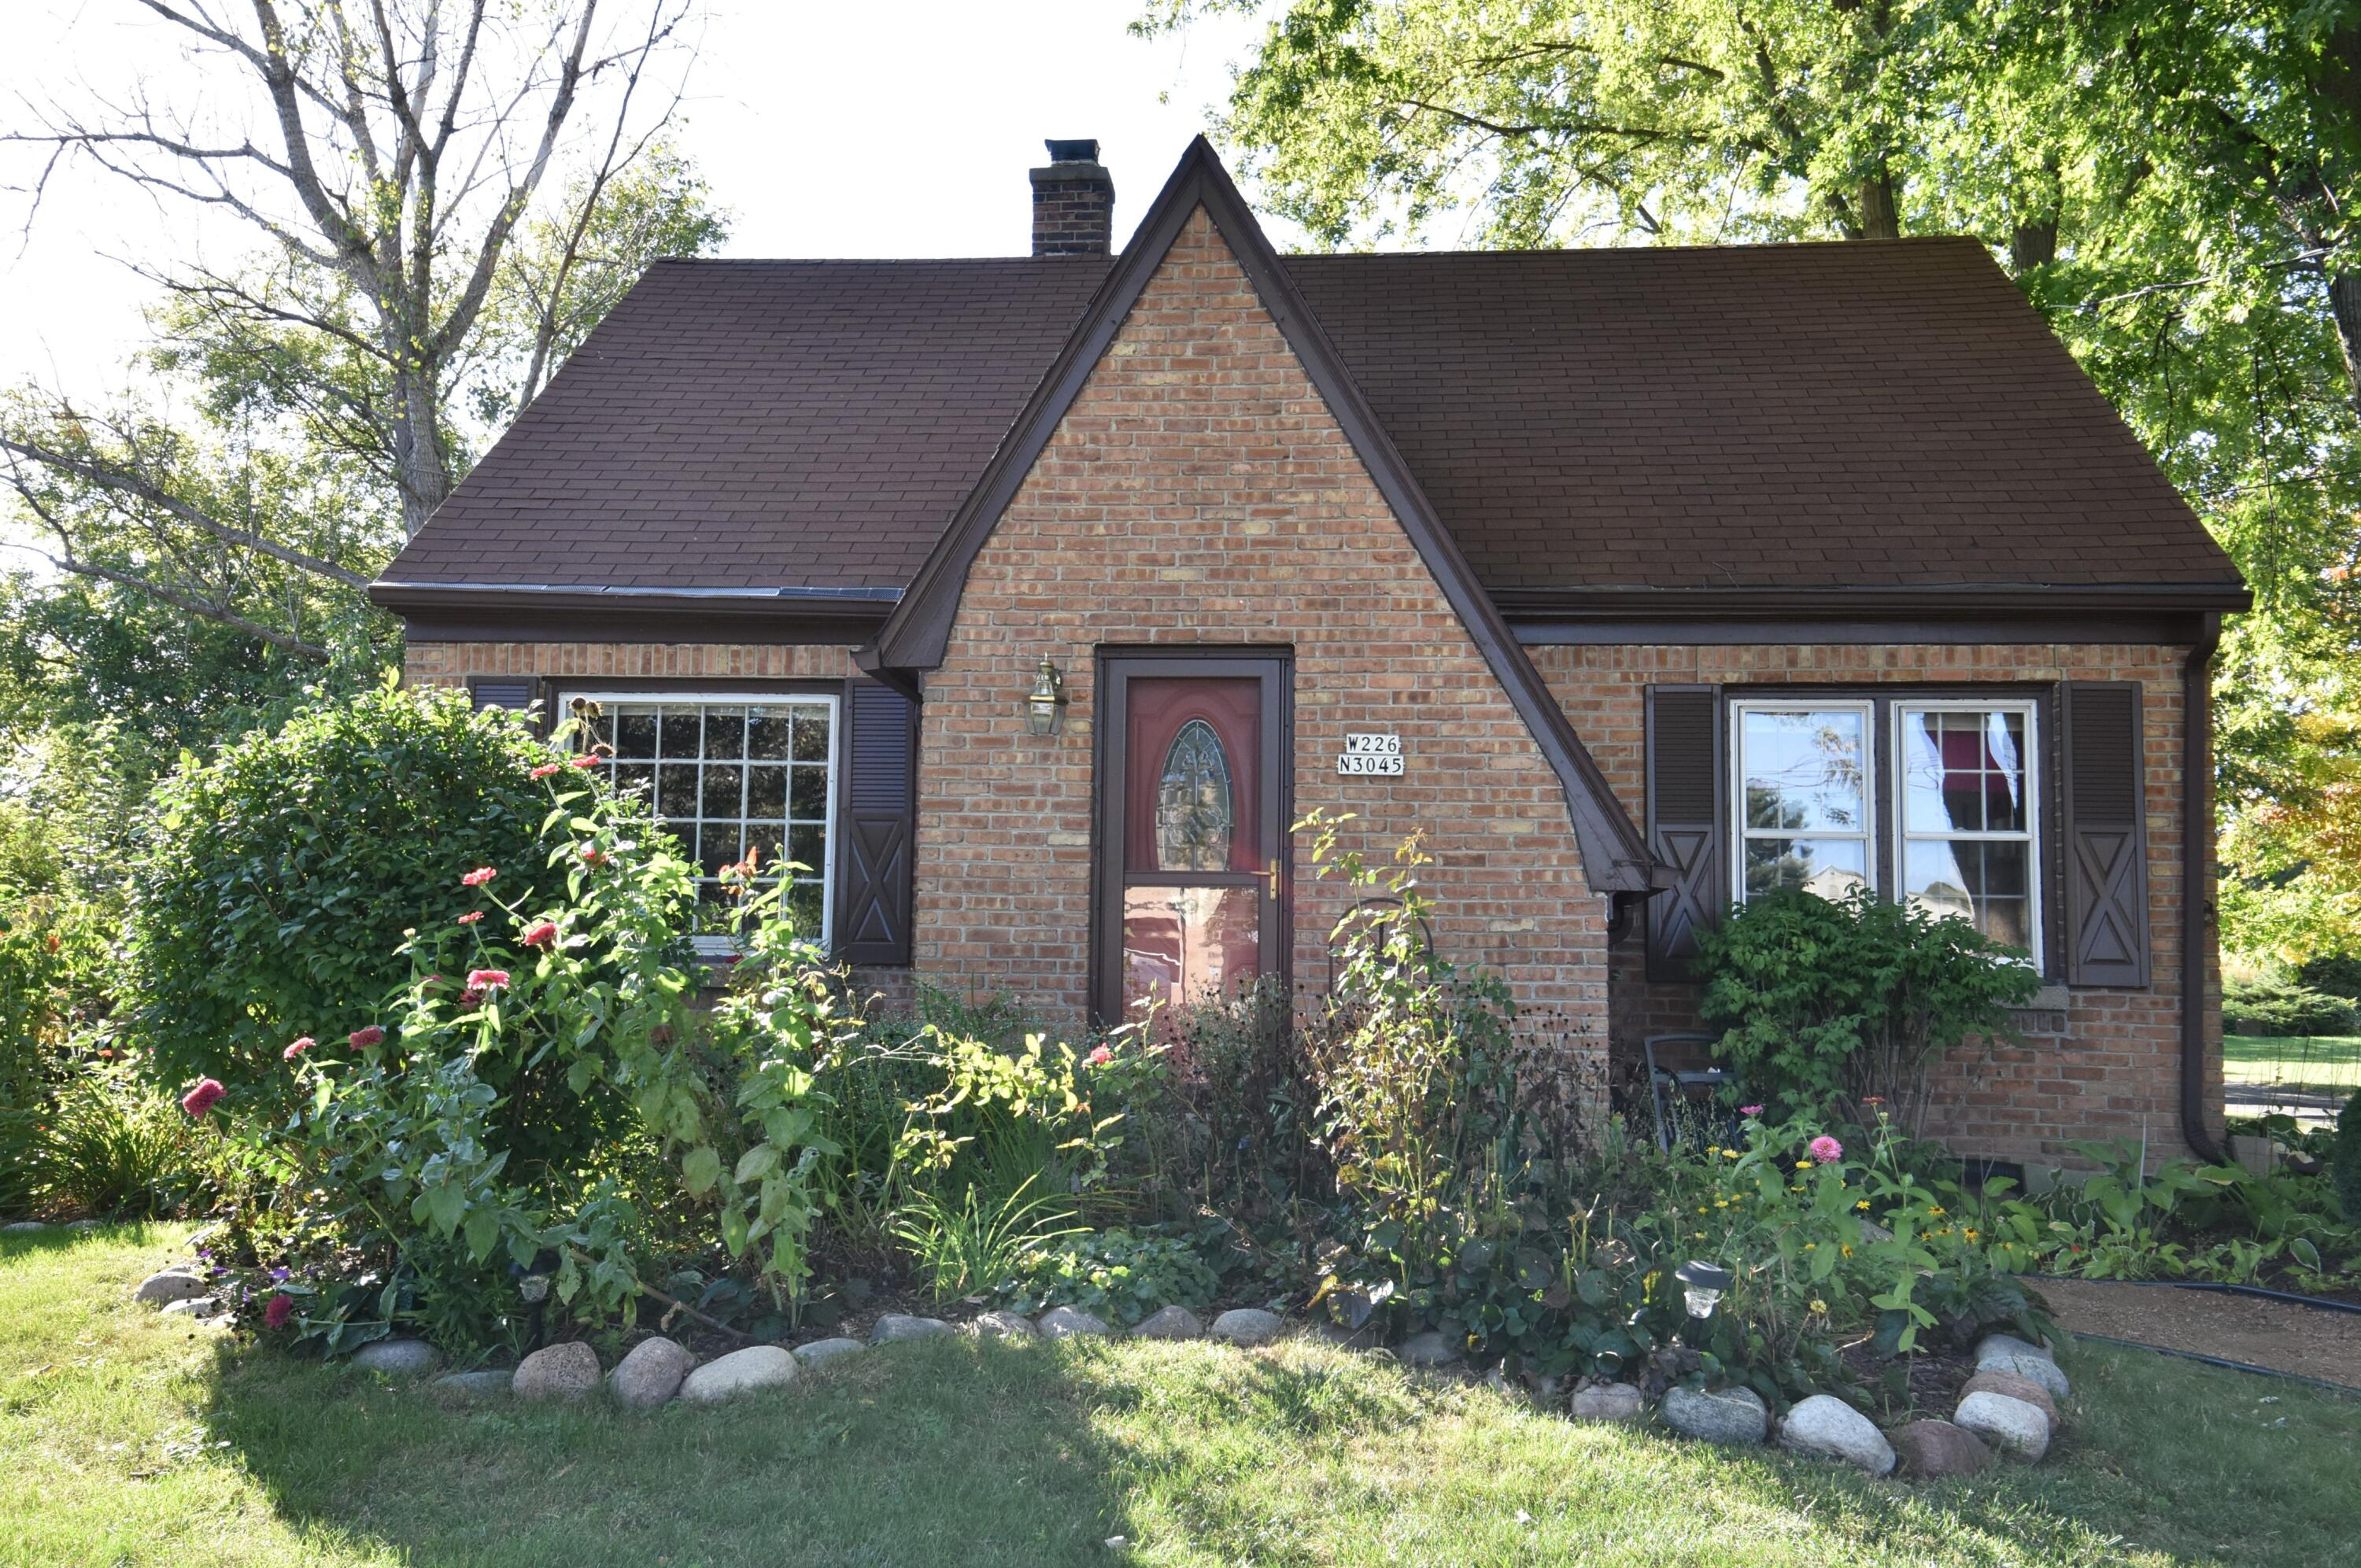 W226N3045 Duplainville Rd, Pewaukee, Wisconsin 53186, 3 Bedrooms Bedrooms, 6 Rooms Rooms,1 BathroomBathrooms,Single-Family,For Sale,Duplainville Rd,1765634